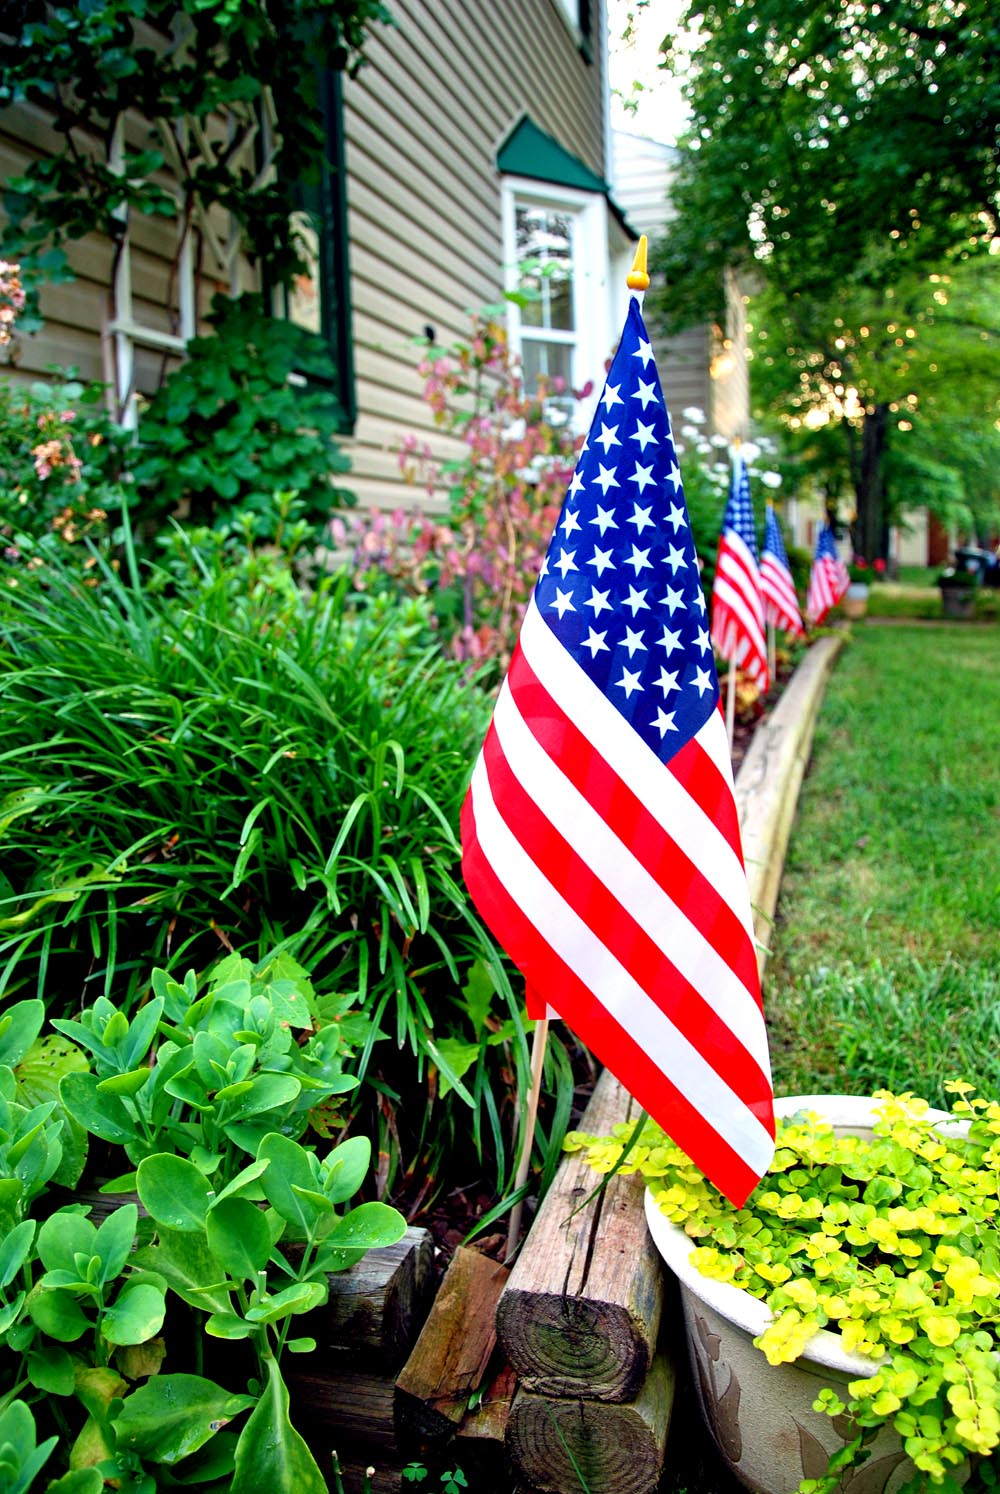 Make your victory garden even more patriotic by lining beds with American flags.